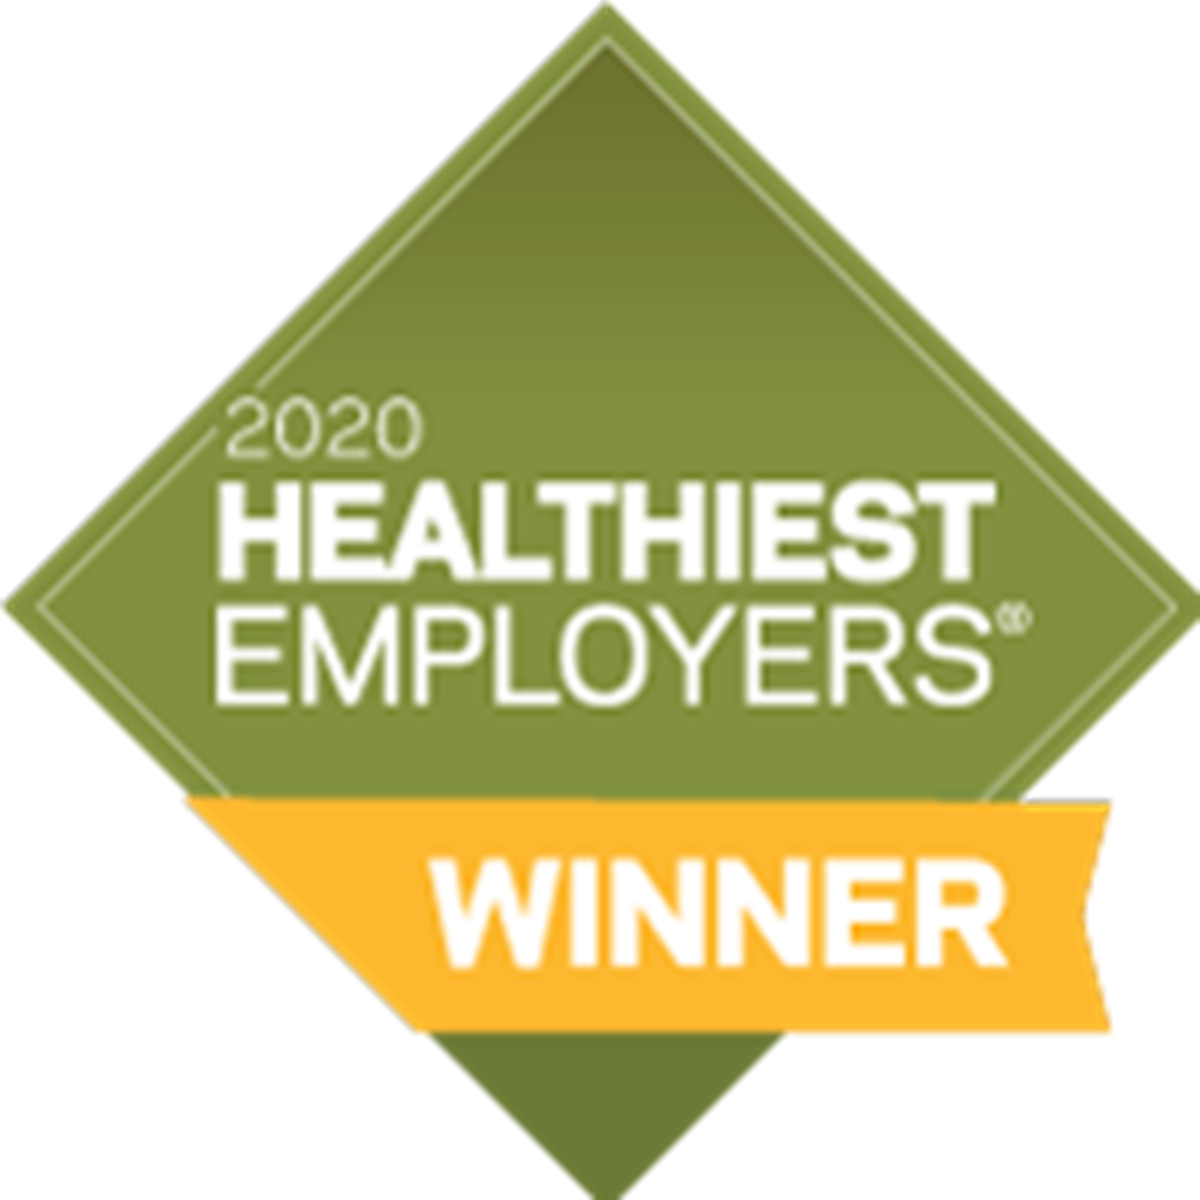 SCH ranked 19 among 2020 Top 100 Healthiest Workplaces in America